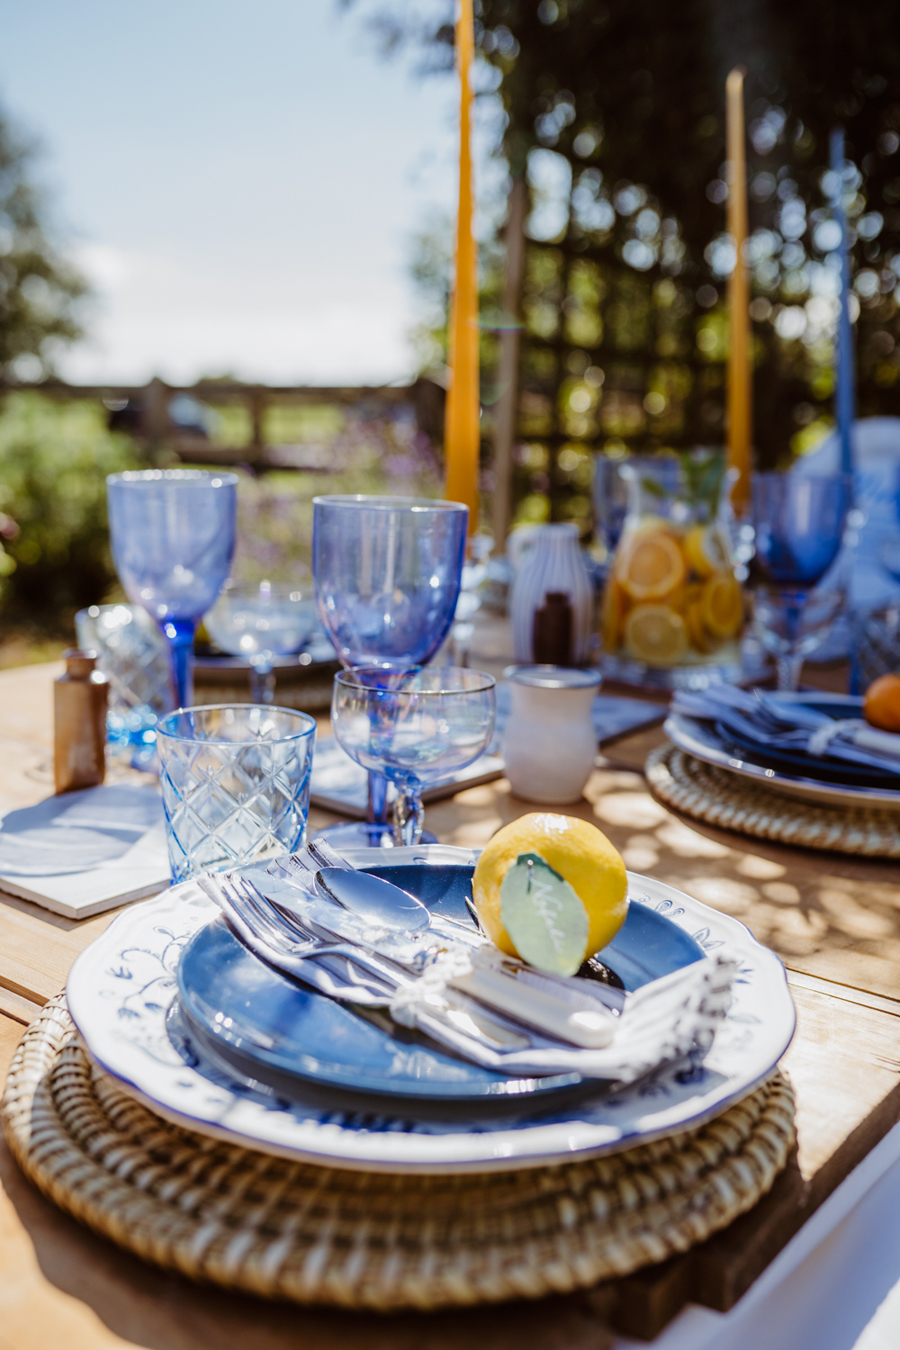 Wedding Catering, Styled Tables and Crockery Hire, with Enamelware Events (10)